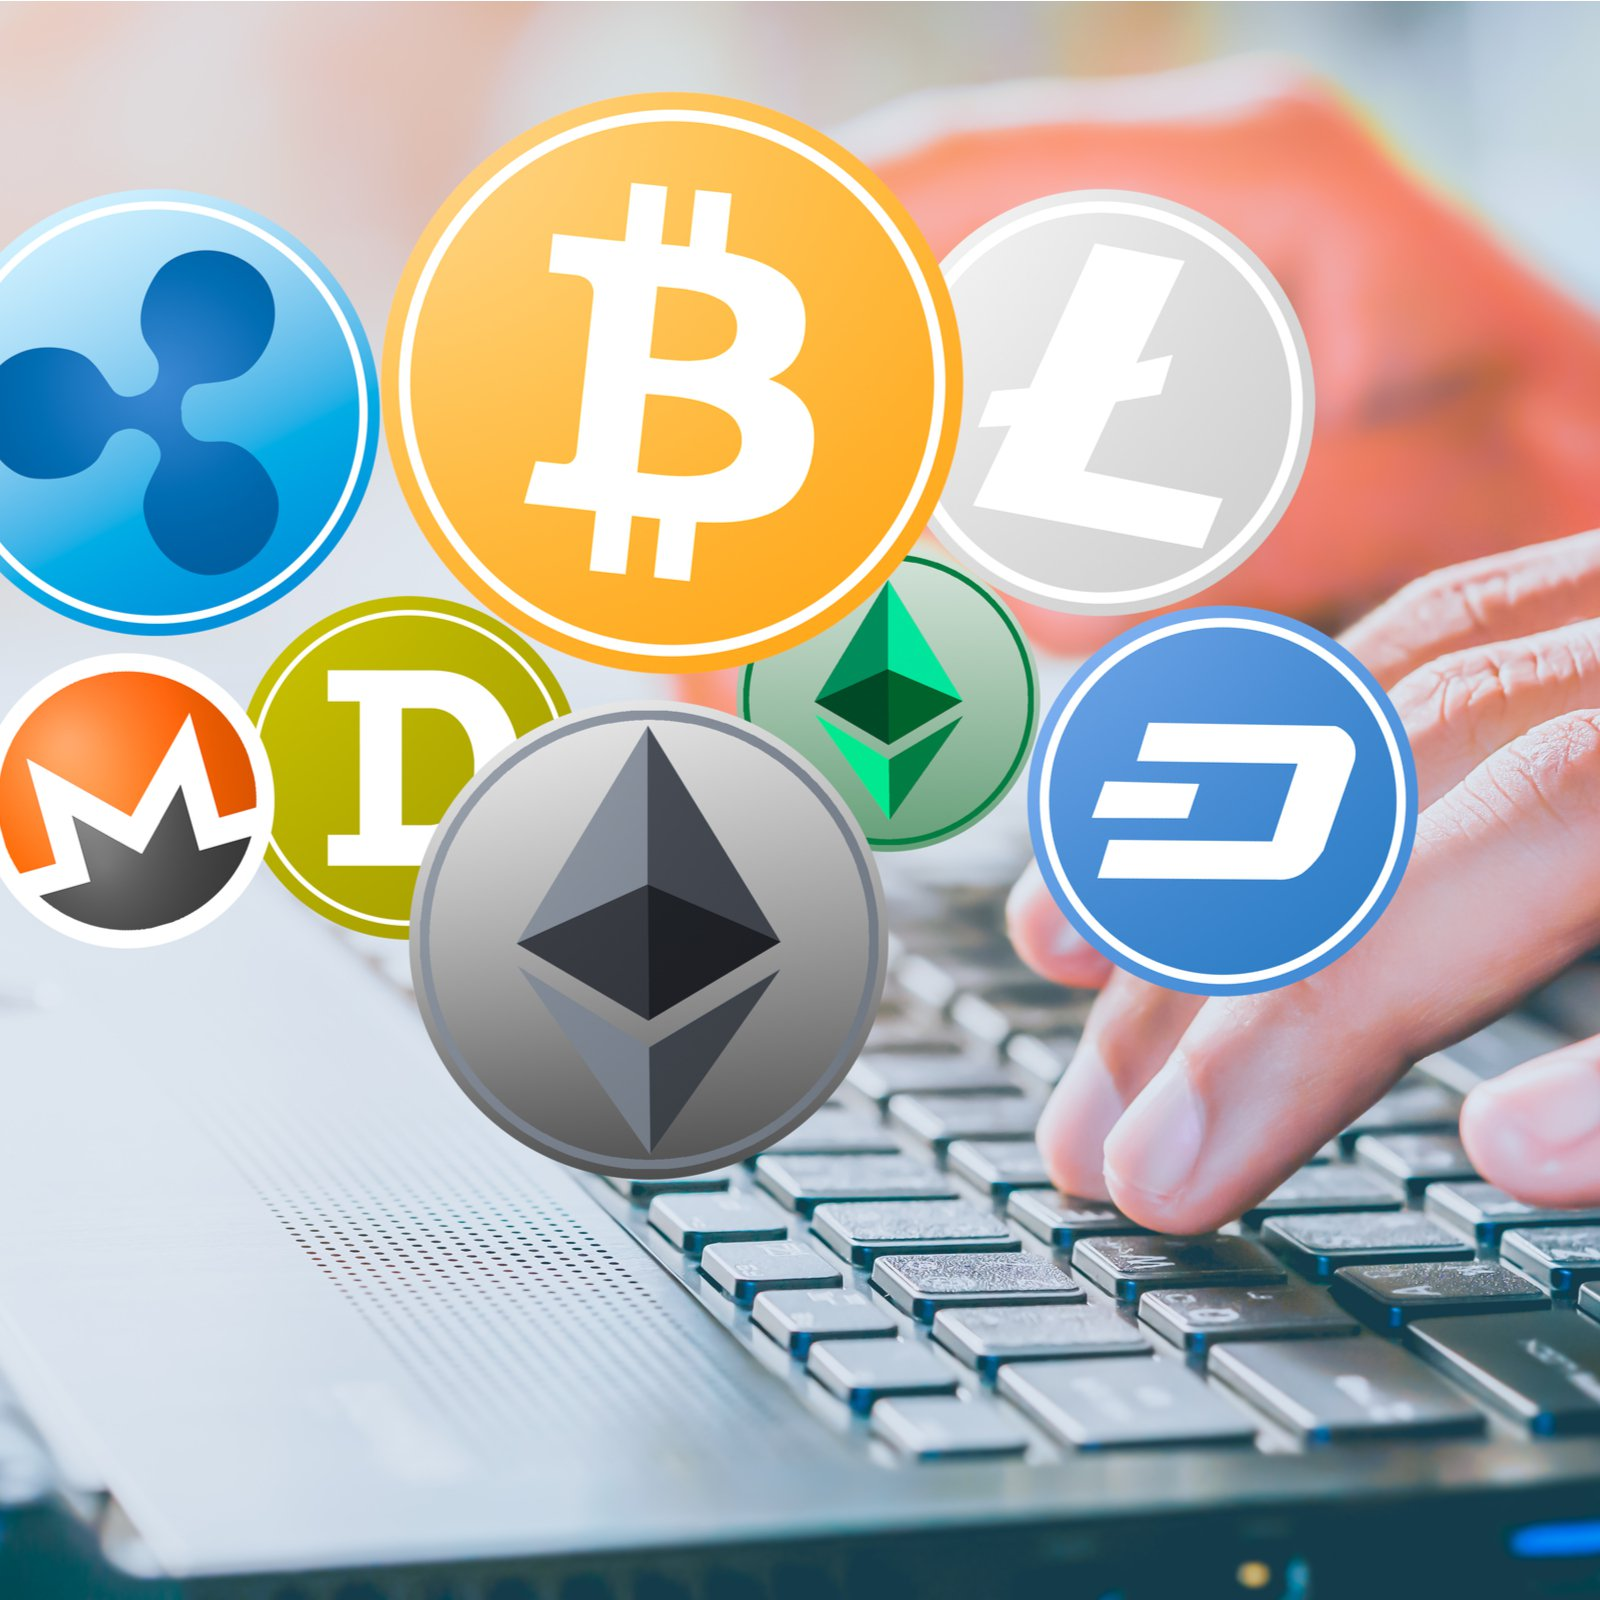 New ESMA Measures Impose 2:1 Restriction on Leverage for Crypto CFDs